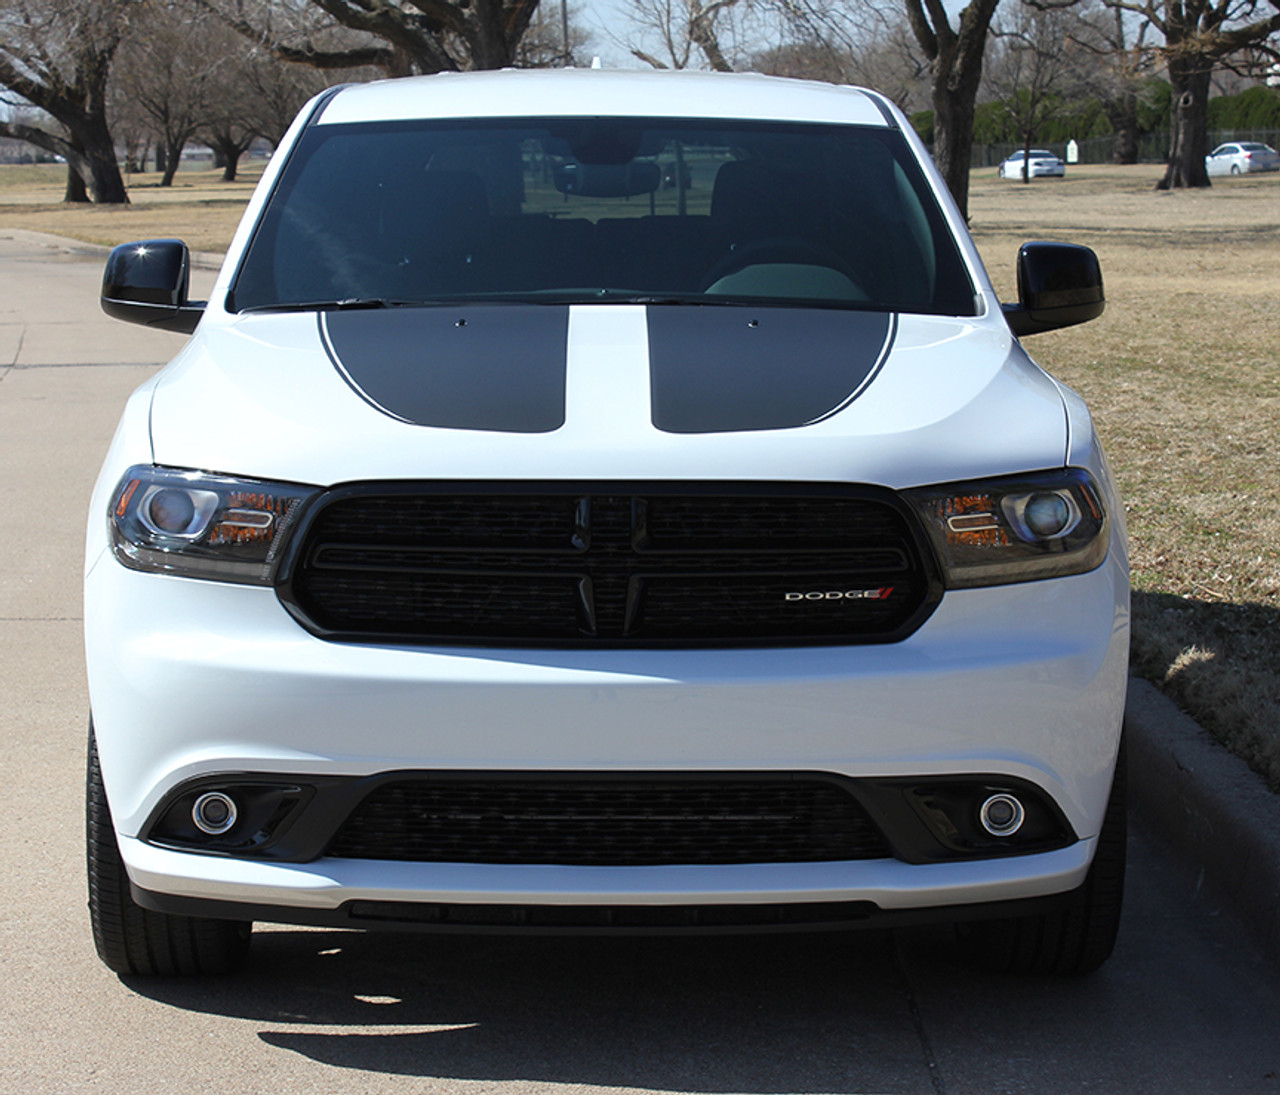 2018 Dodge Durango Hood Stripes Propel Hood 2011 2020 2021